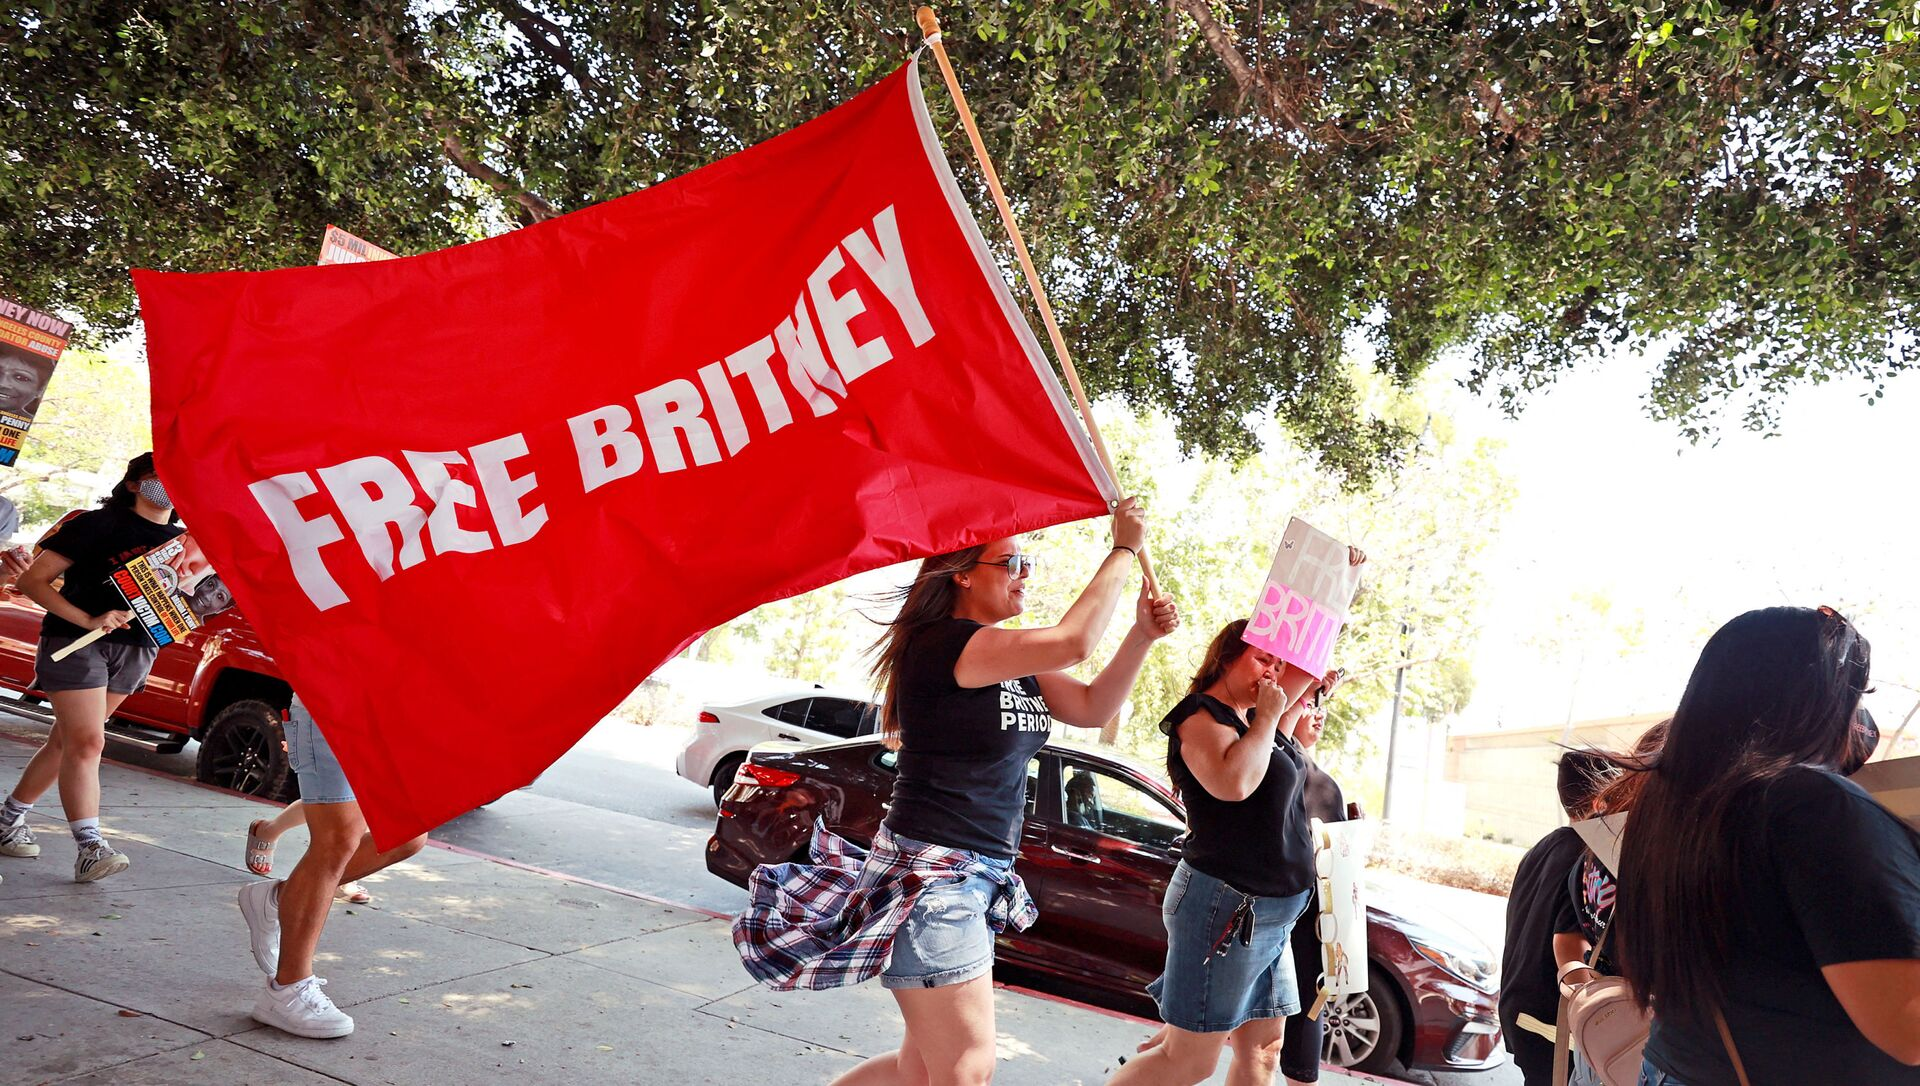 Protesters attend a #FreeBritney Rally at Stanley Mosk Courthouse on 14 July 2021 in Los Angeles, California. The group is calling for an end to the 13-year conservatorship led by the pop star's father, Jamie Spears, and career conservator Jodi Montgomery, who have control over her finances and business dealings. Planned co-conservator Bessemer Trust is petitioning the court to resign from its position after Britney Spears spoke out in court about the conservatorship.  - Sputnik International, 1920, 30.07.2021